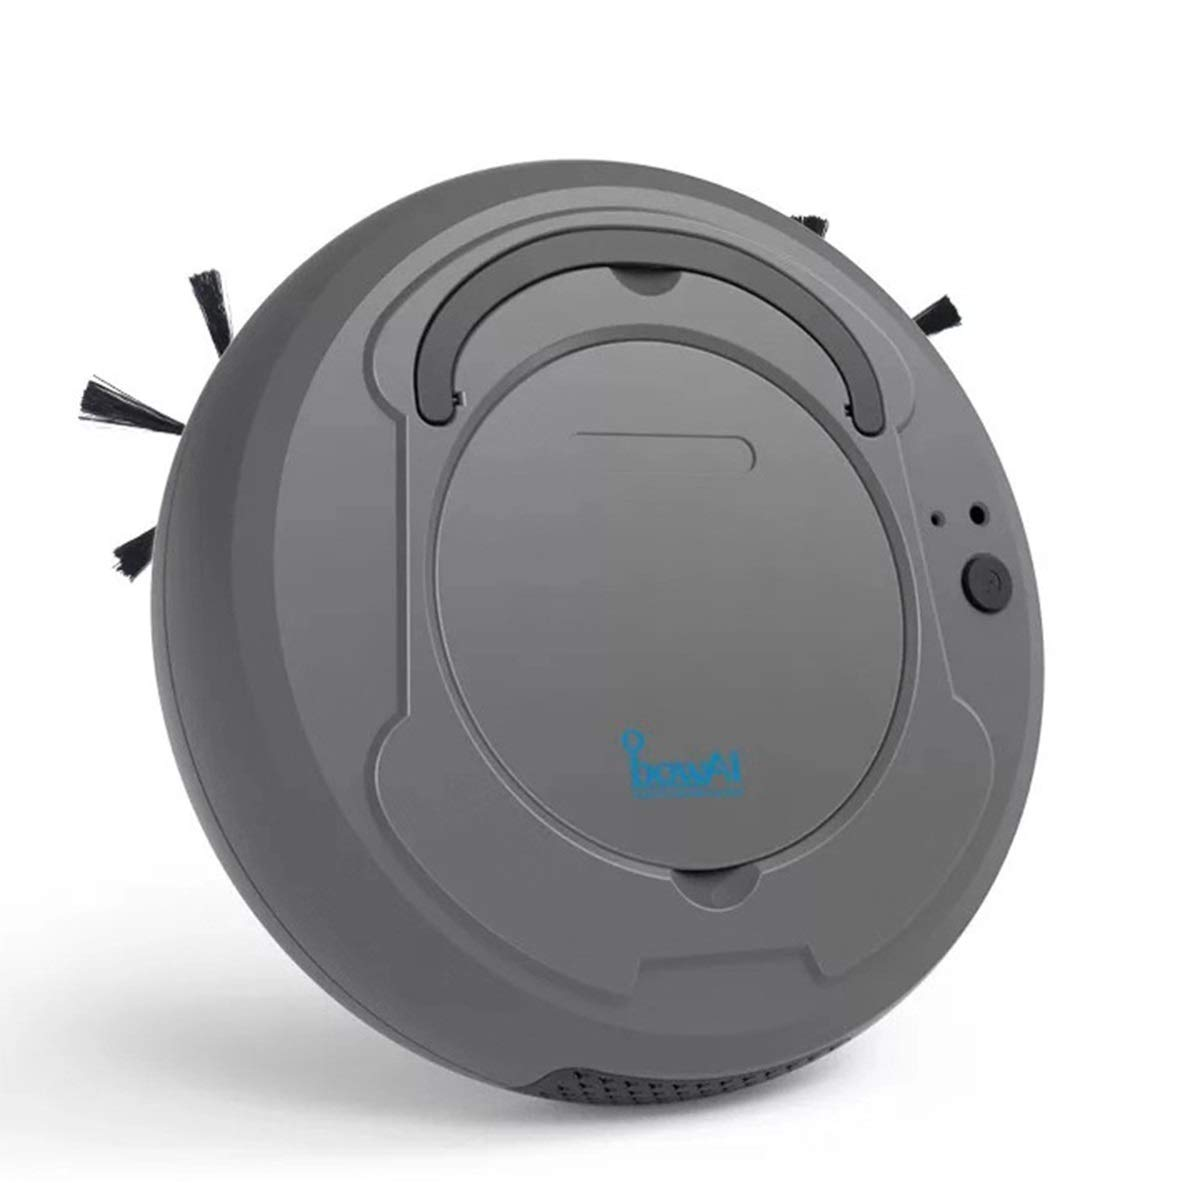 Robot Vacuum Cleaner Sweeping Mopping Dust Pet Hair Cleaning 1800Pa Strong Suction Carpet and All Floor Types (Color : Grey)